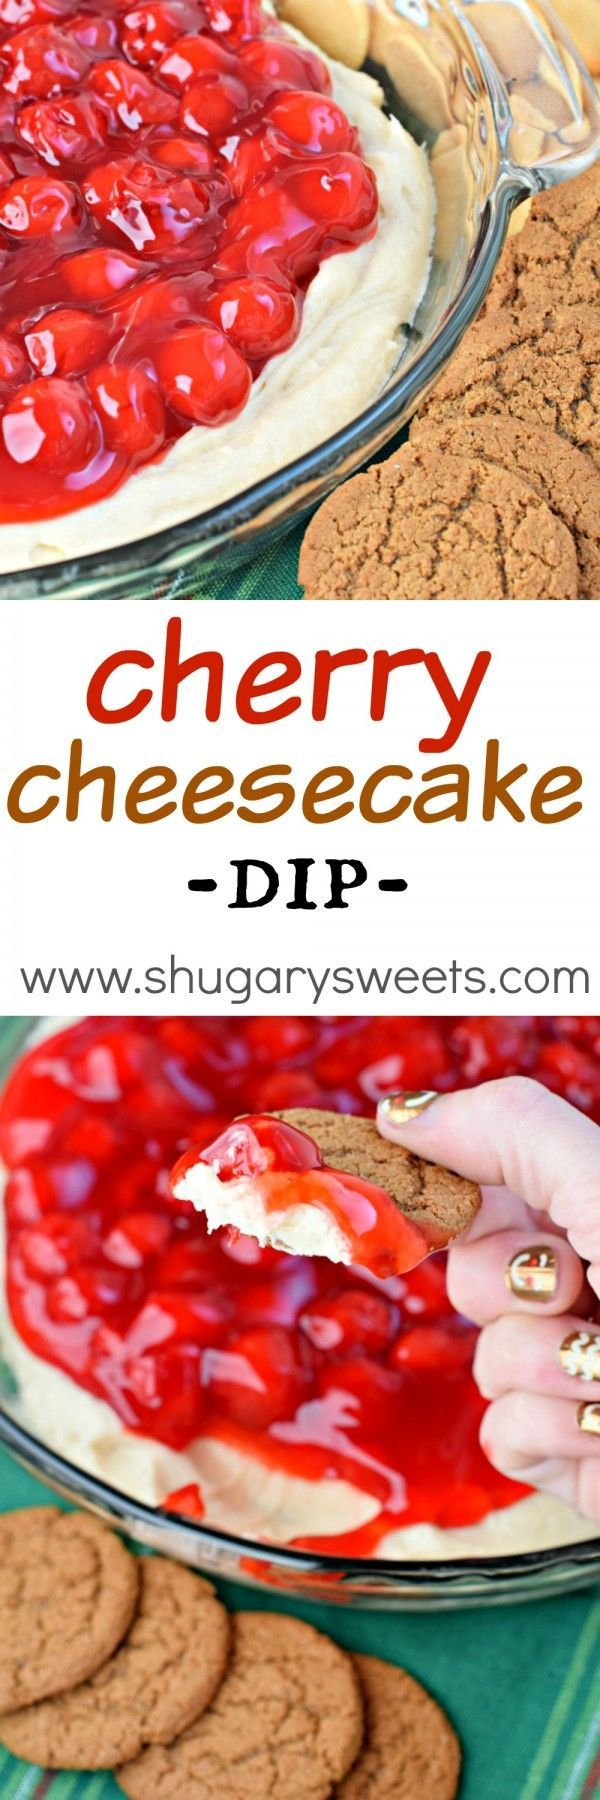 This Cherry Cheesecake Dip recipe is the perfect snack for the holidays. Serve as an appetizer or dessert, it's creamy delicious flavor will have you begging for more!